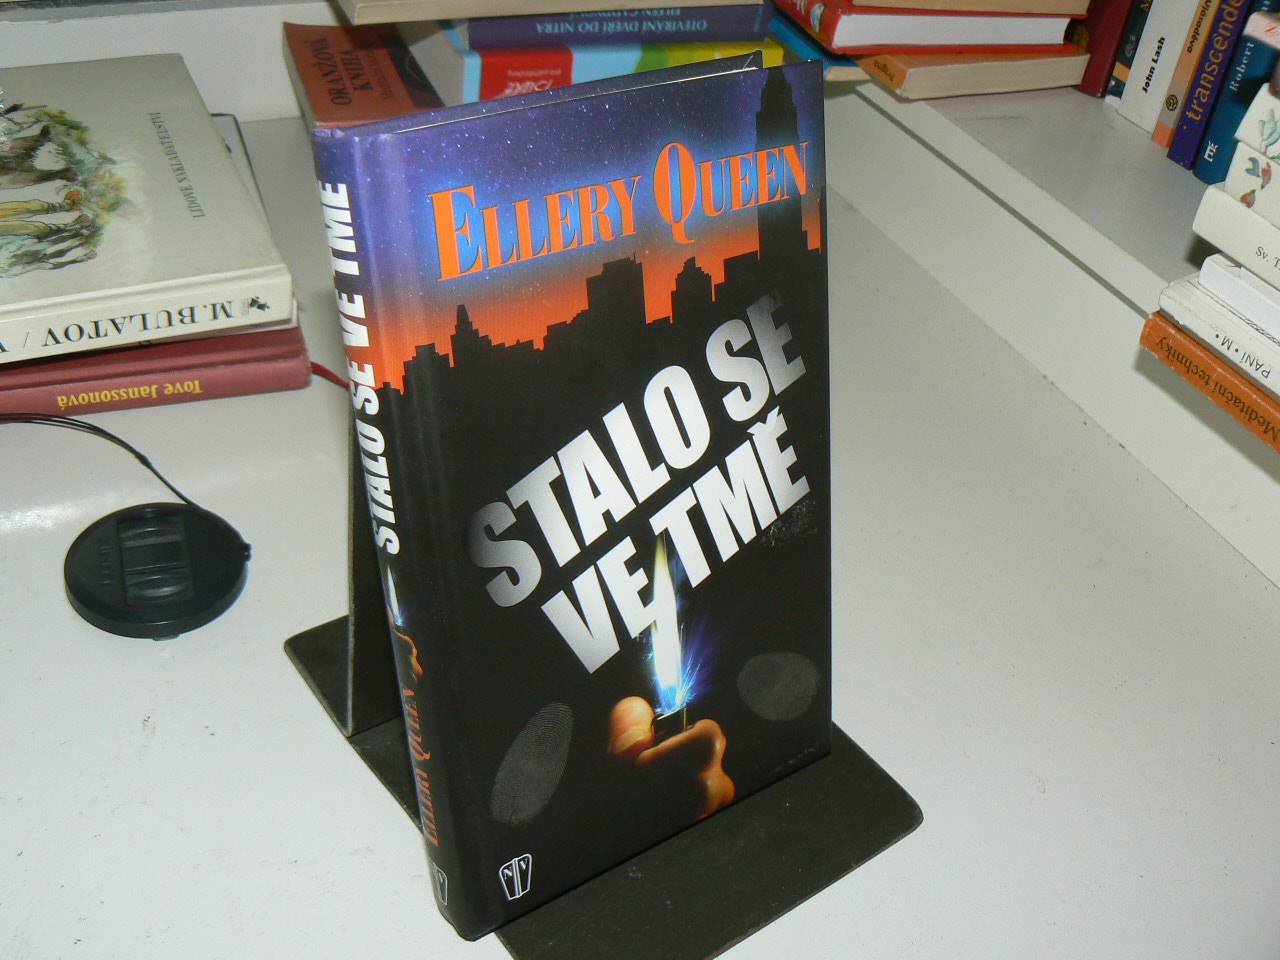 Stalo se ve tmě - Ellery Queen